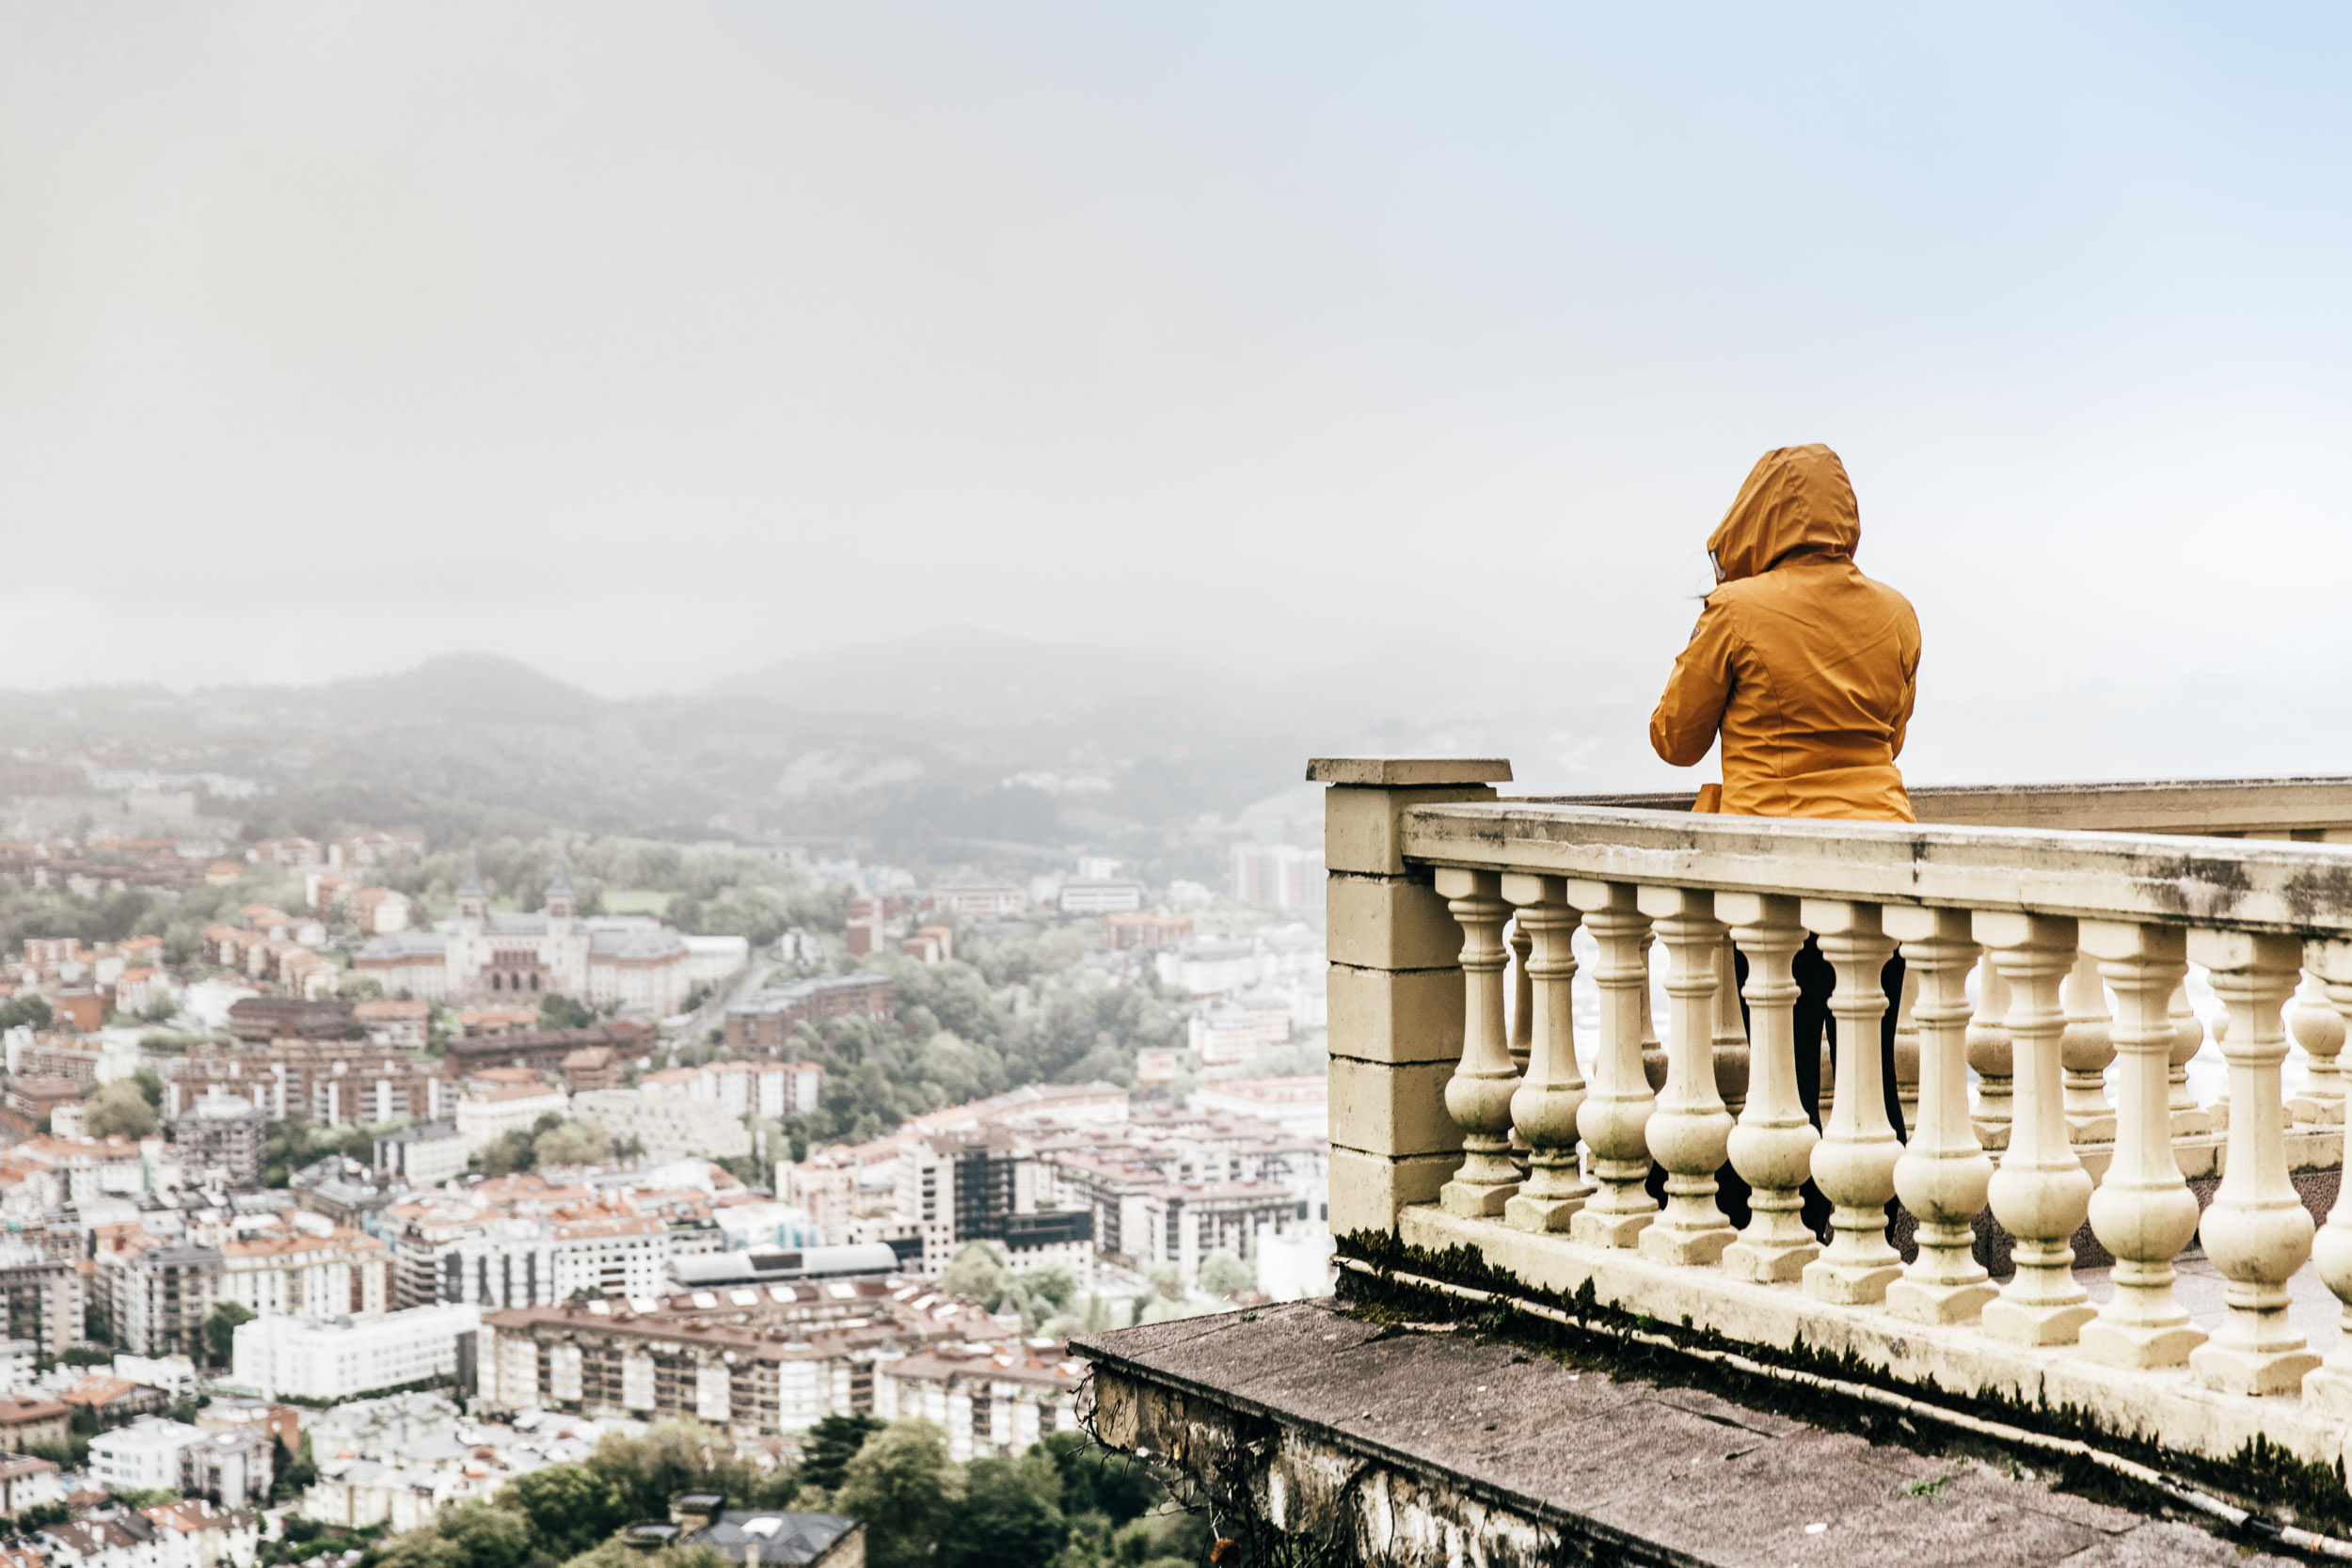 Mandy looks out over the city of San Sebastian in Northern Spain